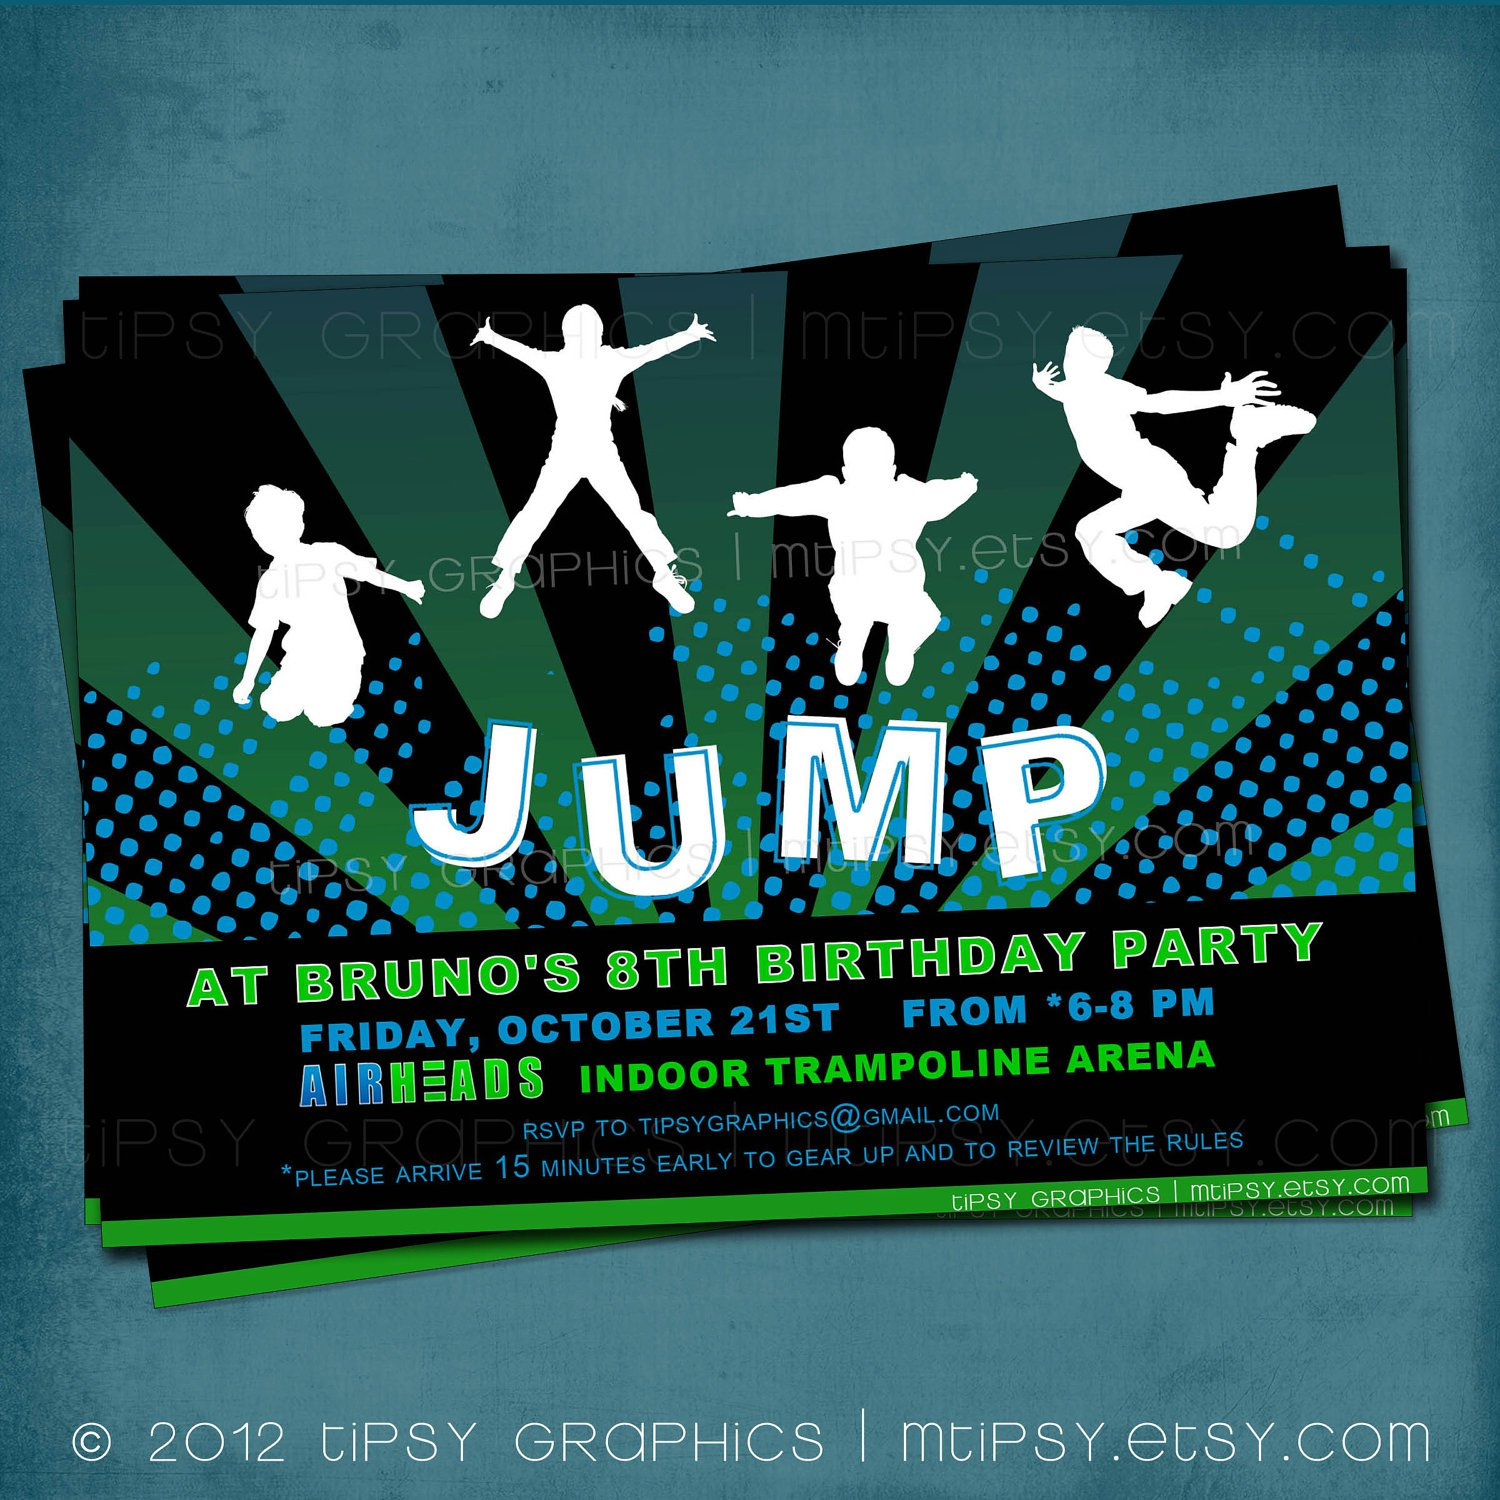 trampoline party invitation templates. Black Bedroom Furniture Sets. Home Design Ideas